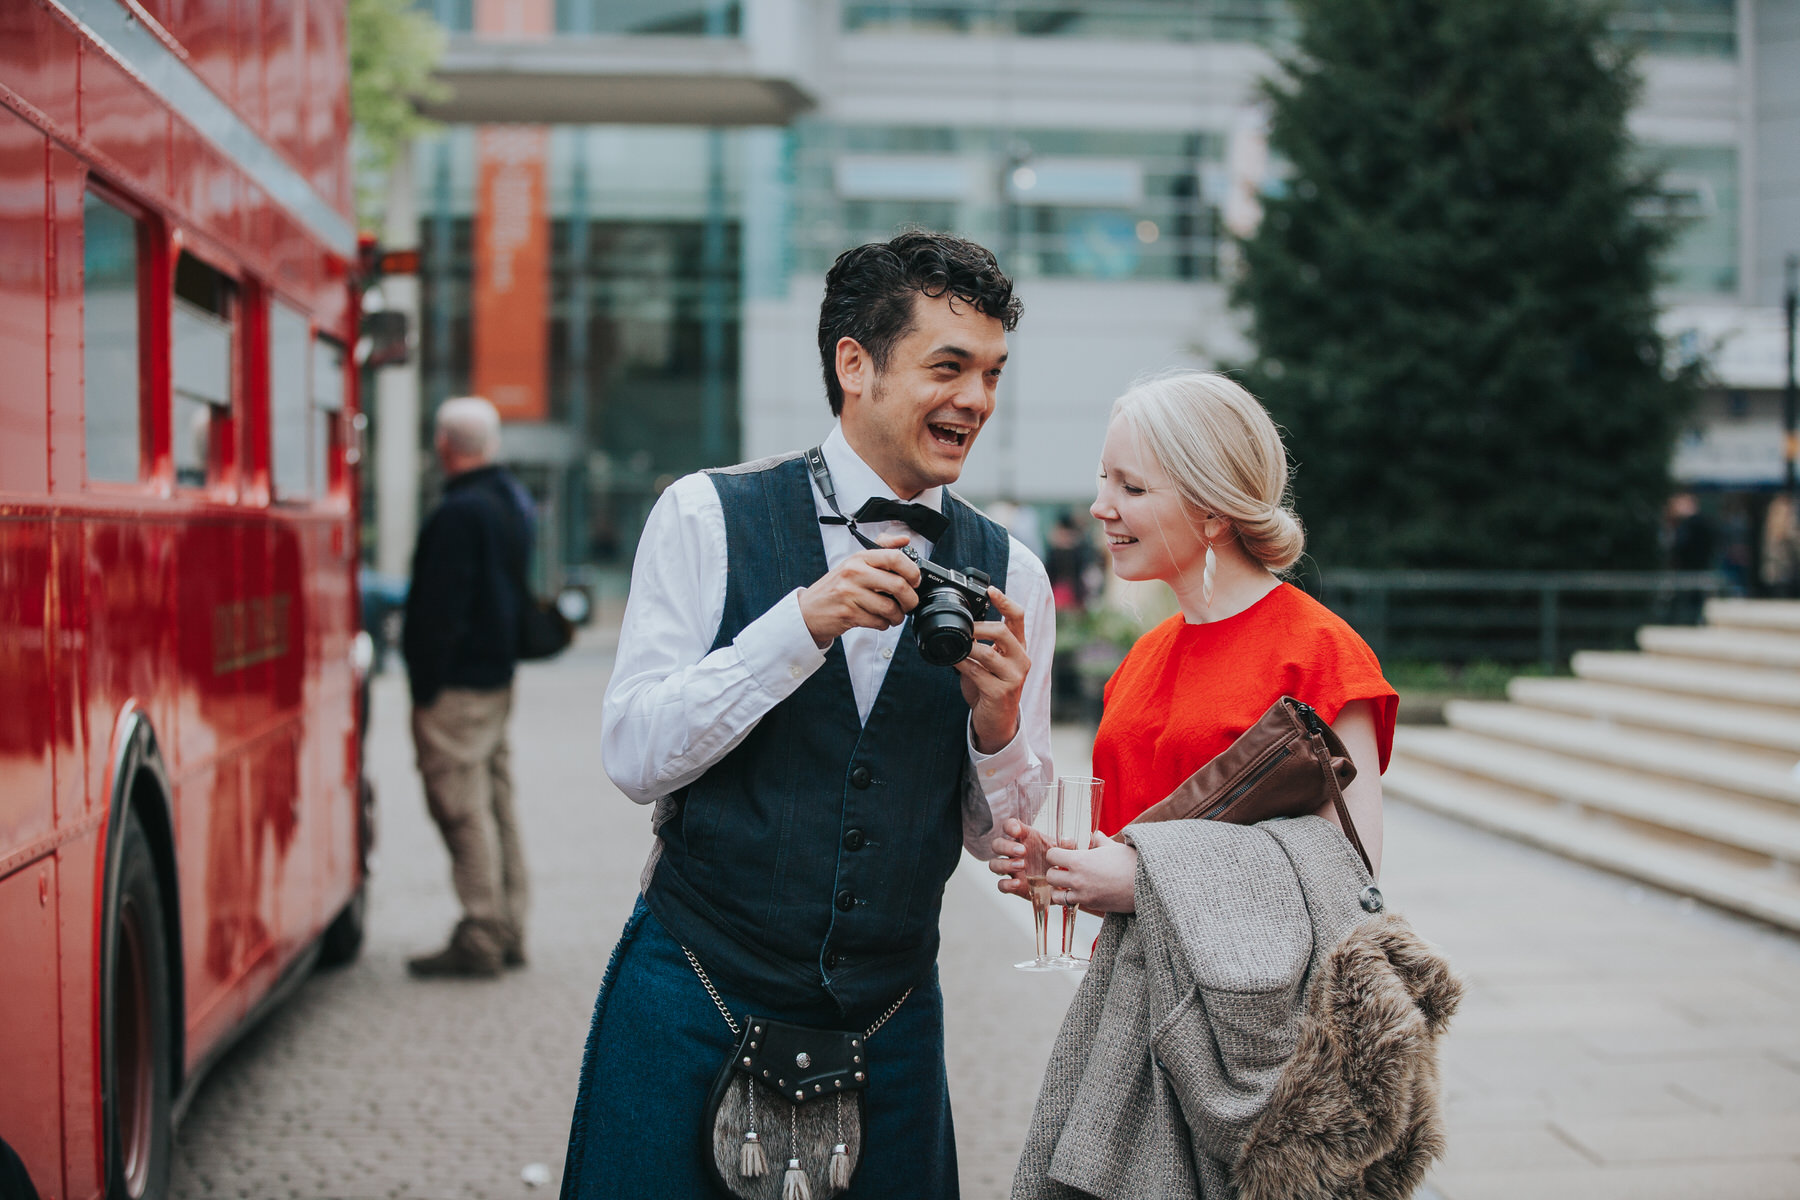 MS-Londesborough-Pub-wedding-Hackney-alternative-photographer-139-guests-drinking-bubbly-red-london-wedding-bus.jpg